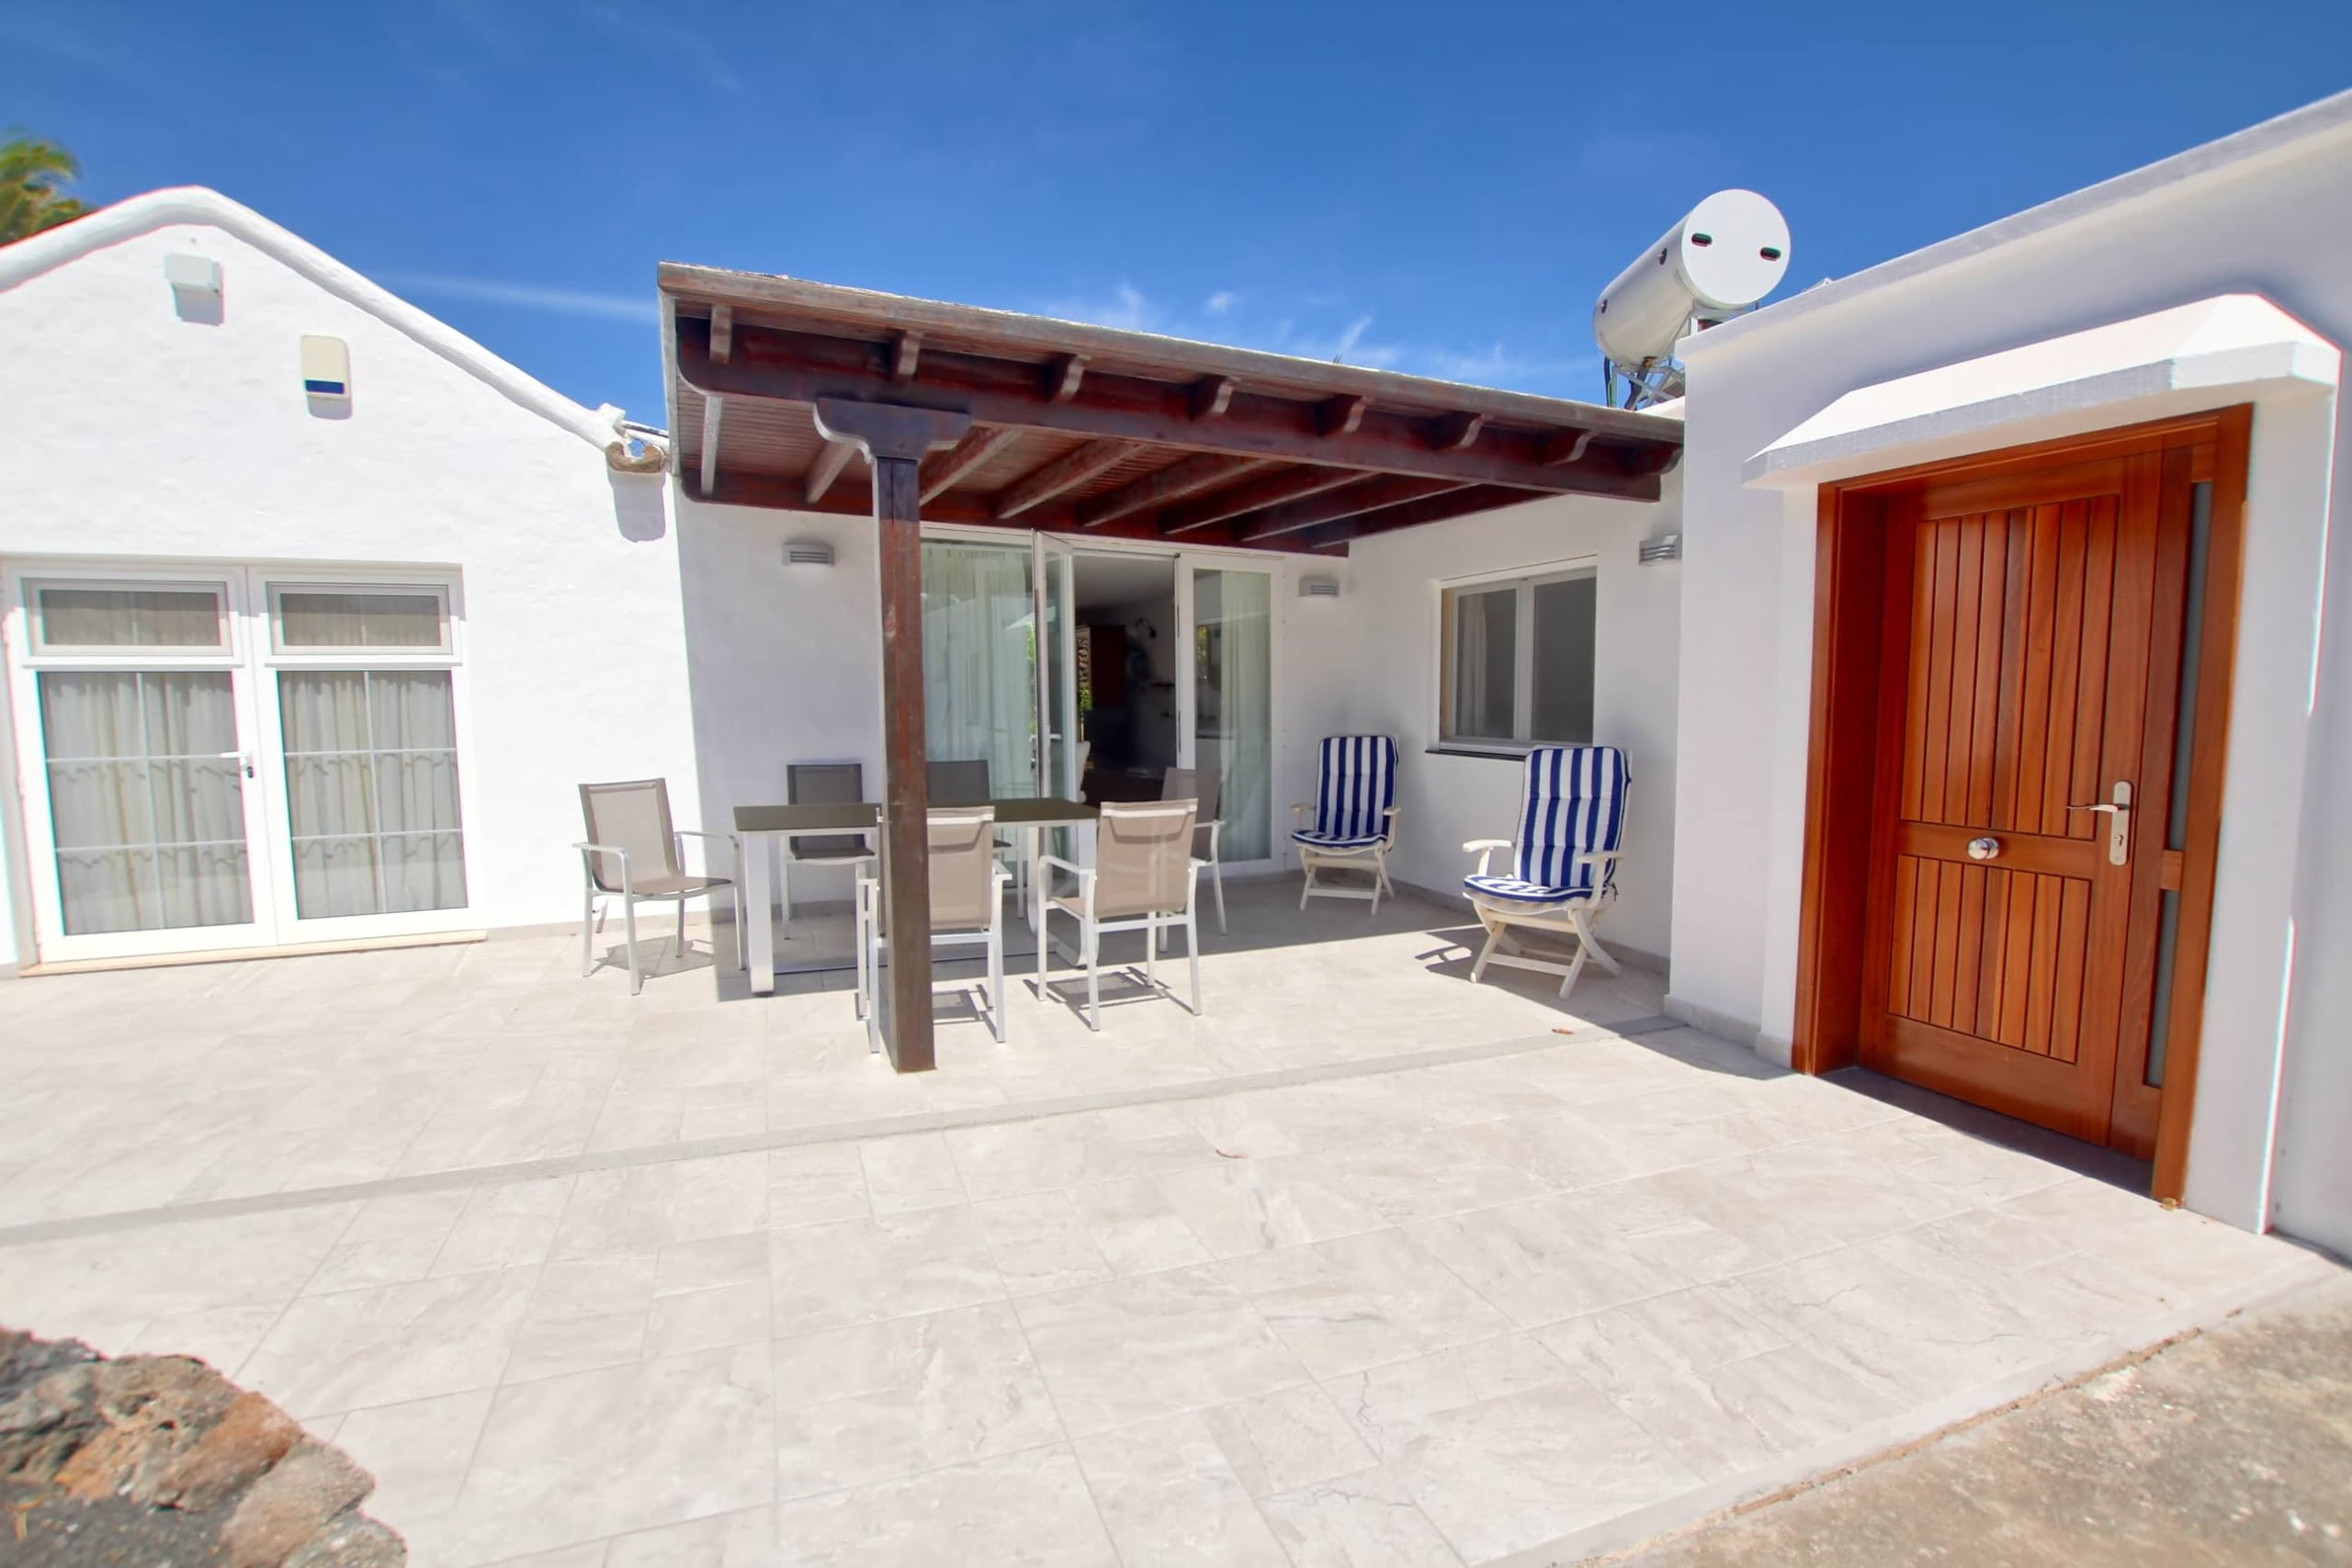 The Lodge - 3 Bedroom Boutique Villa - Los Mojones - Lanzarote -